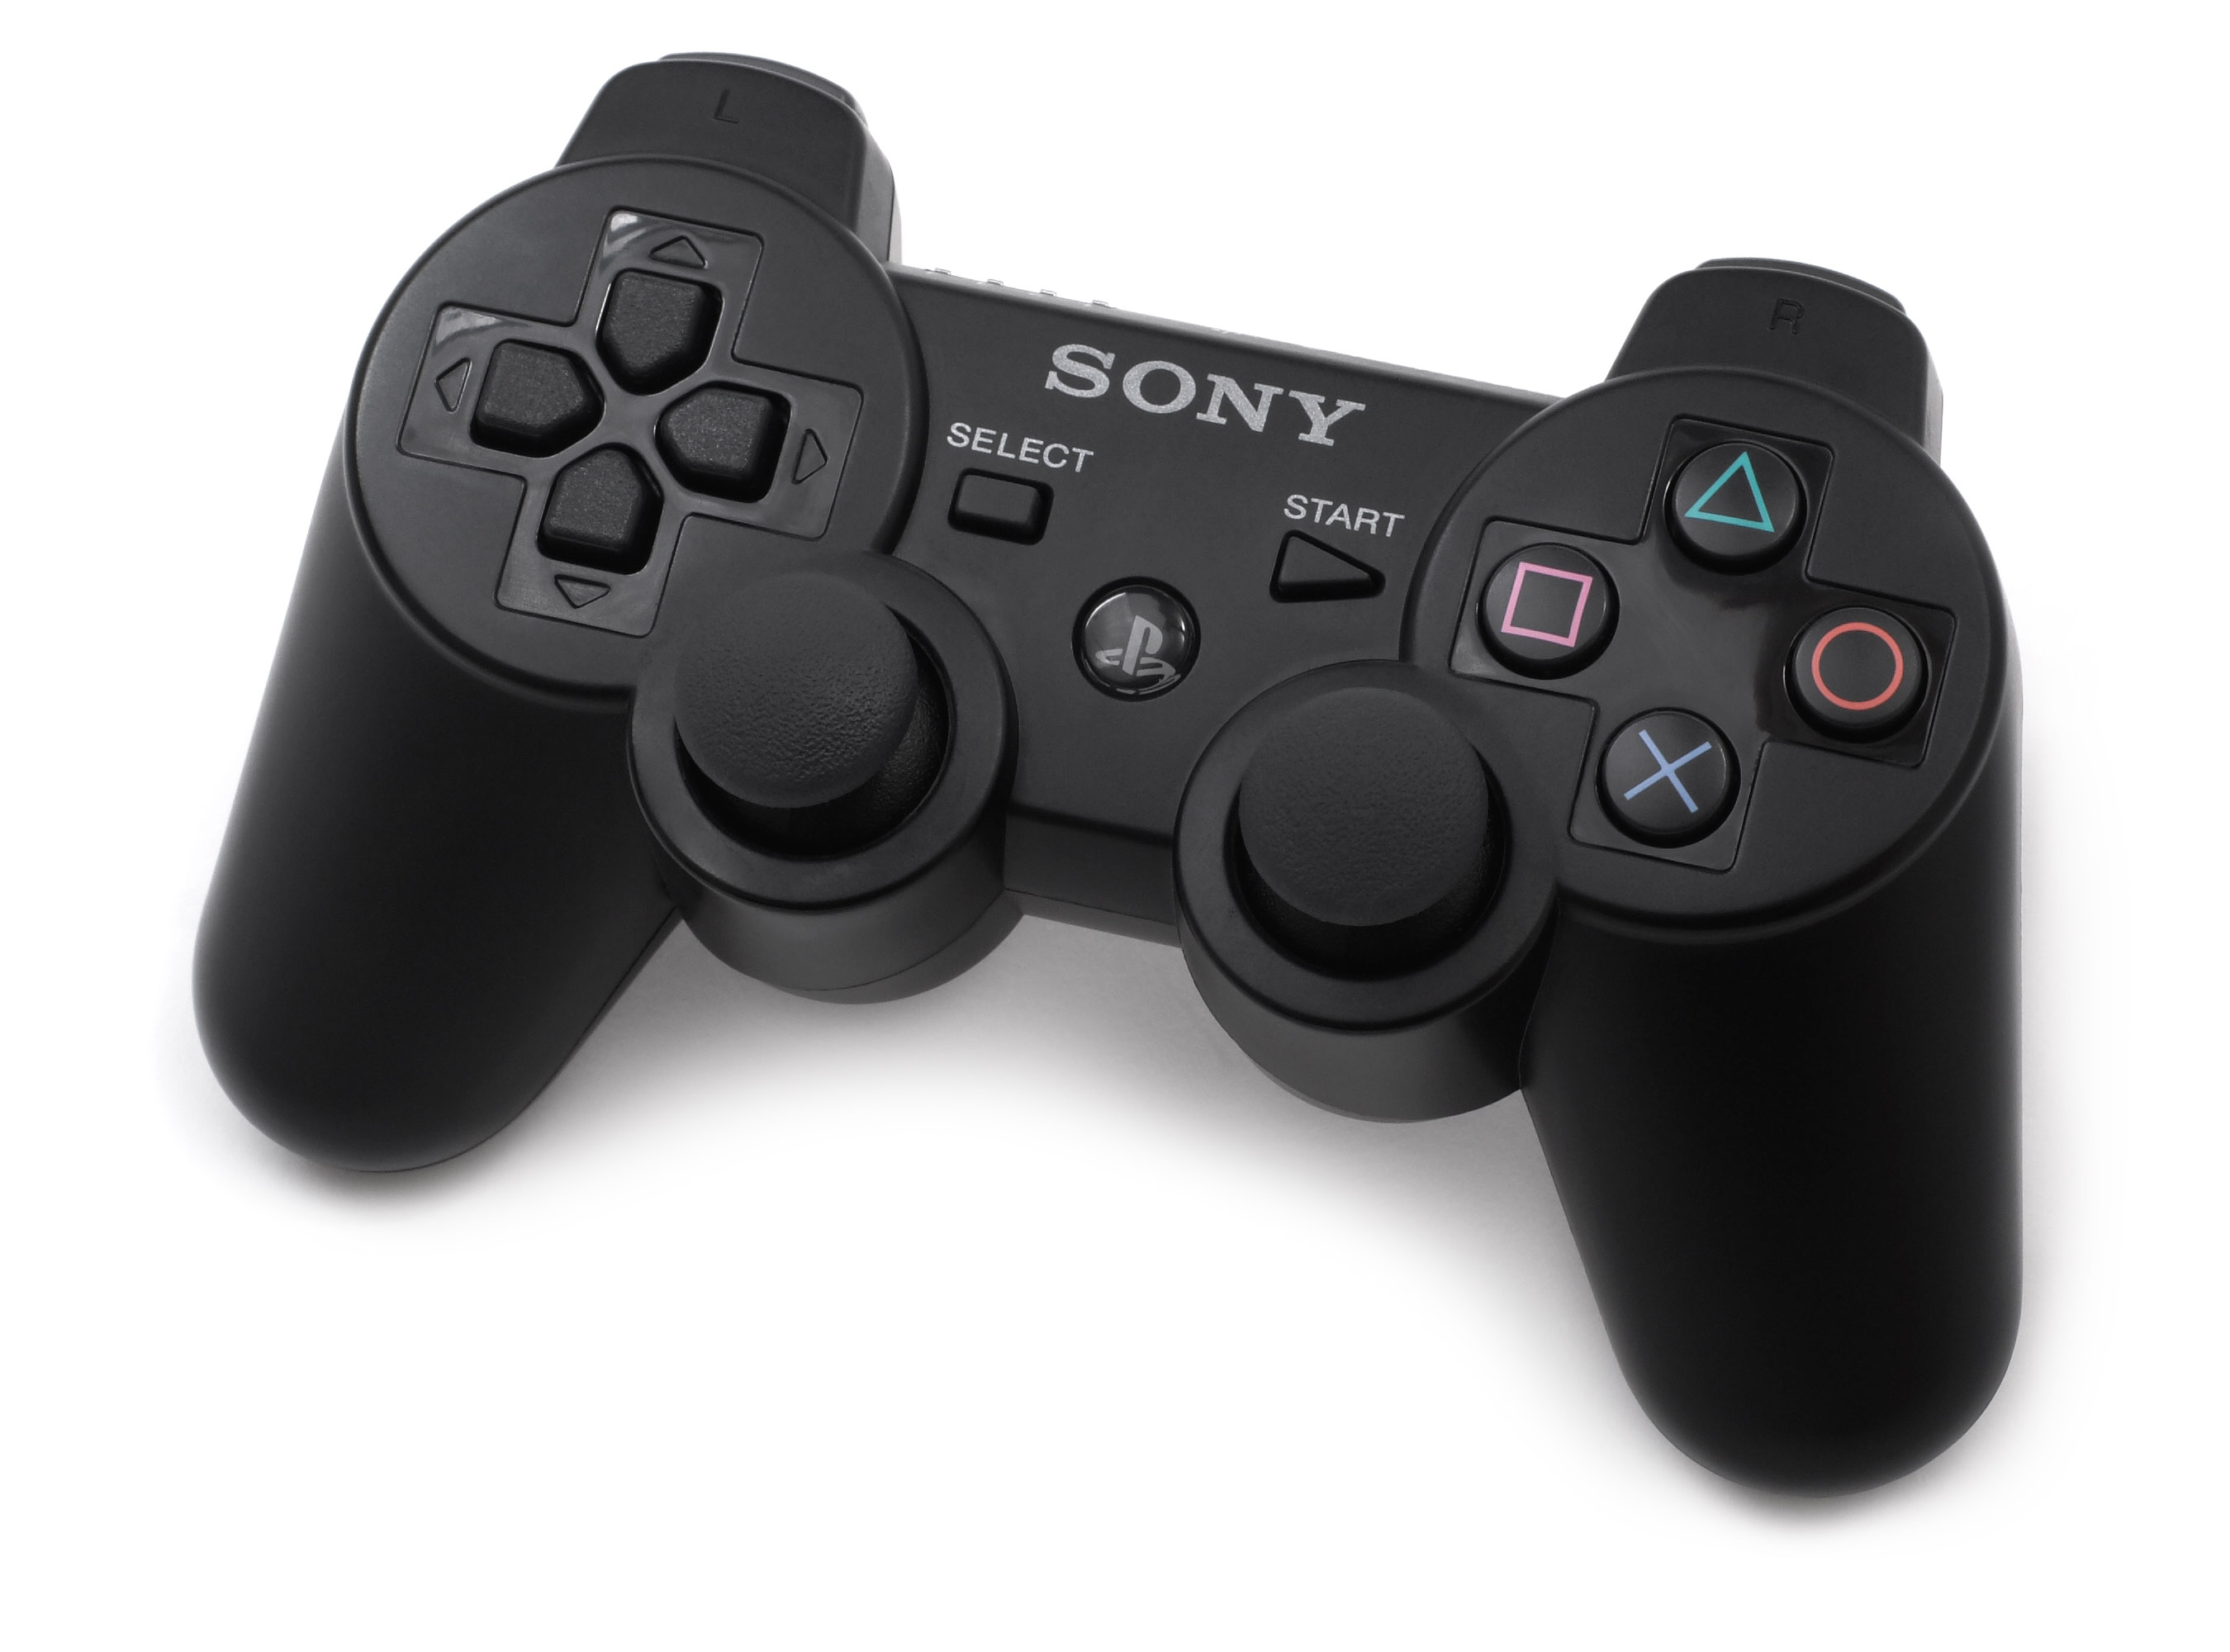 Playstation 3 Controller File:PS3-DualShock3.jp...